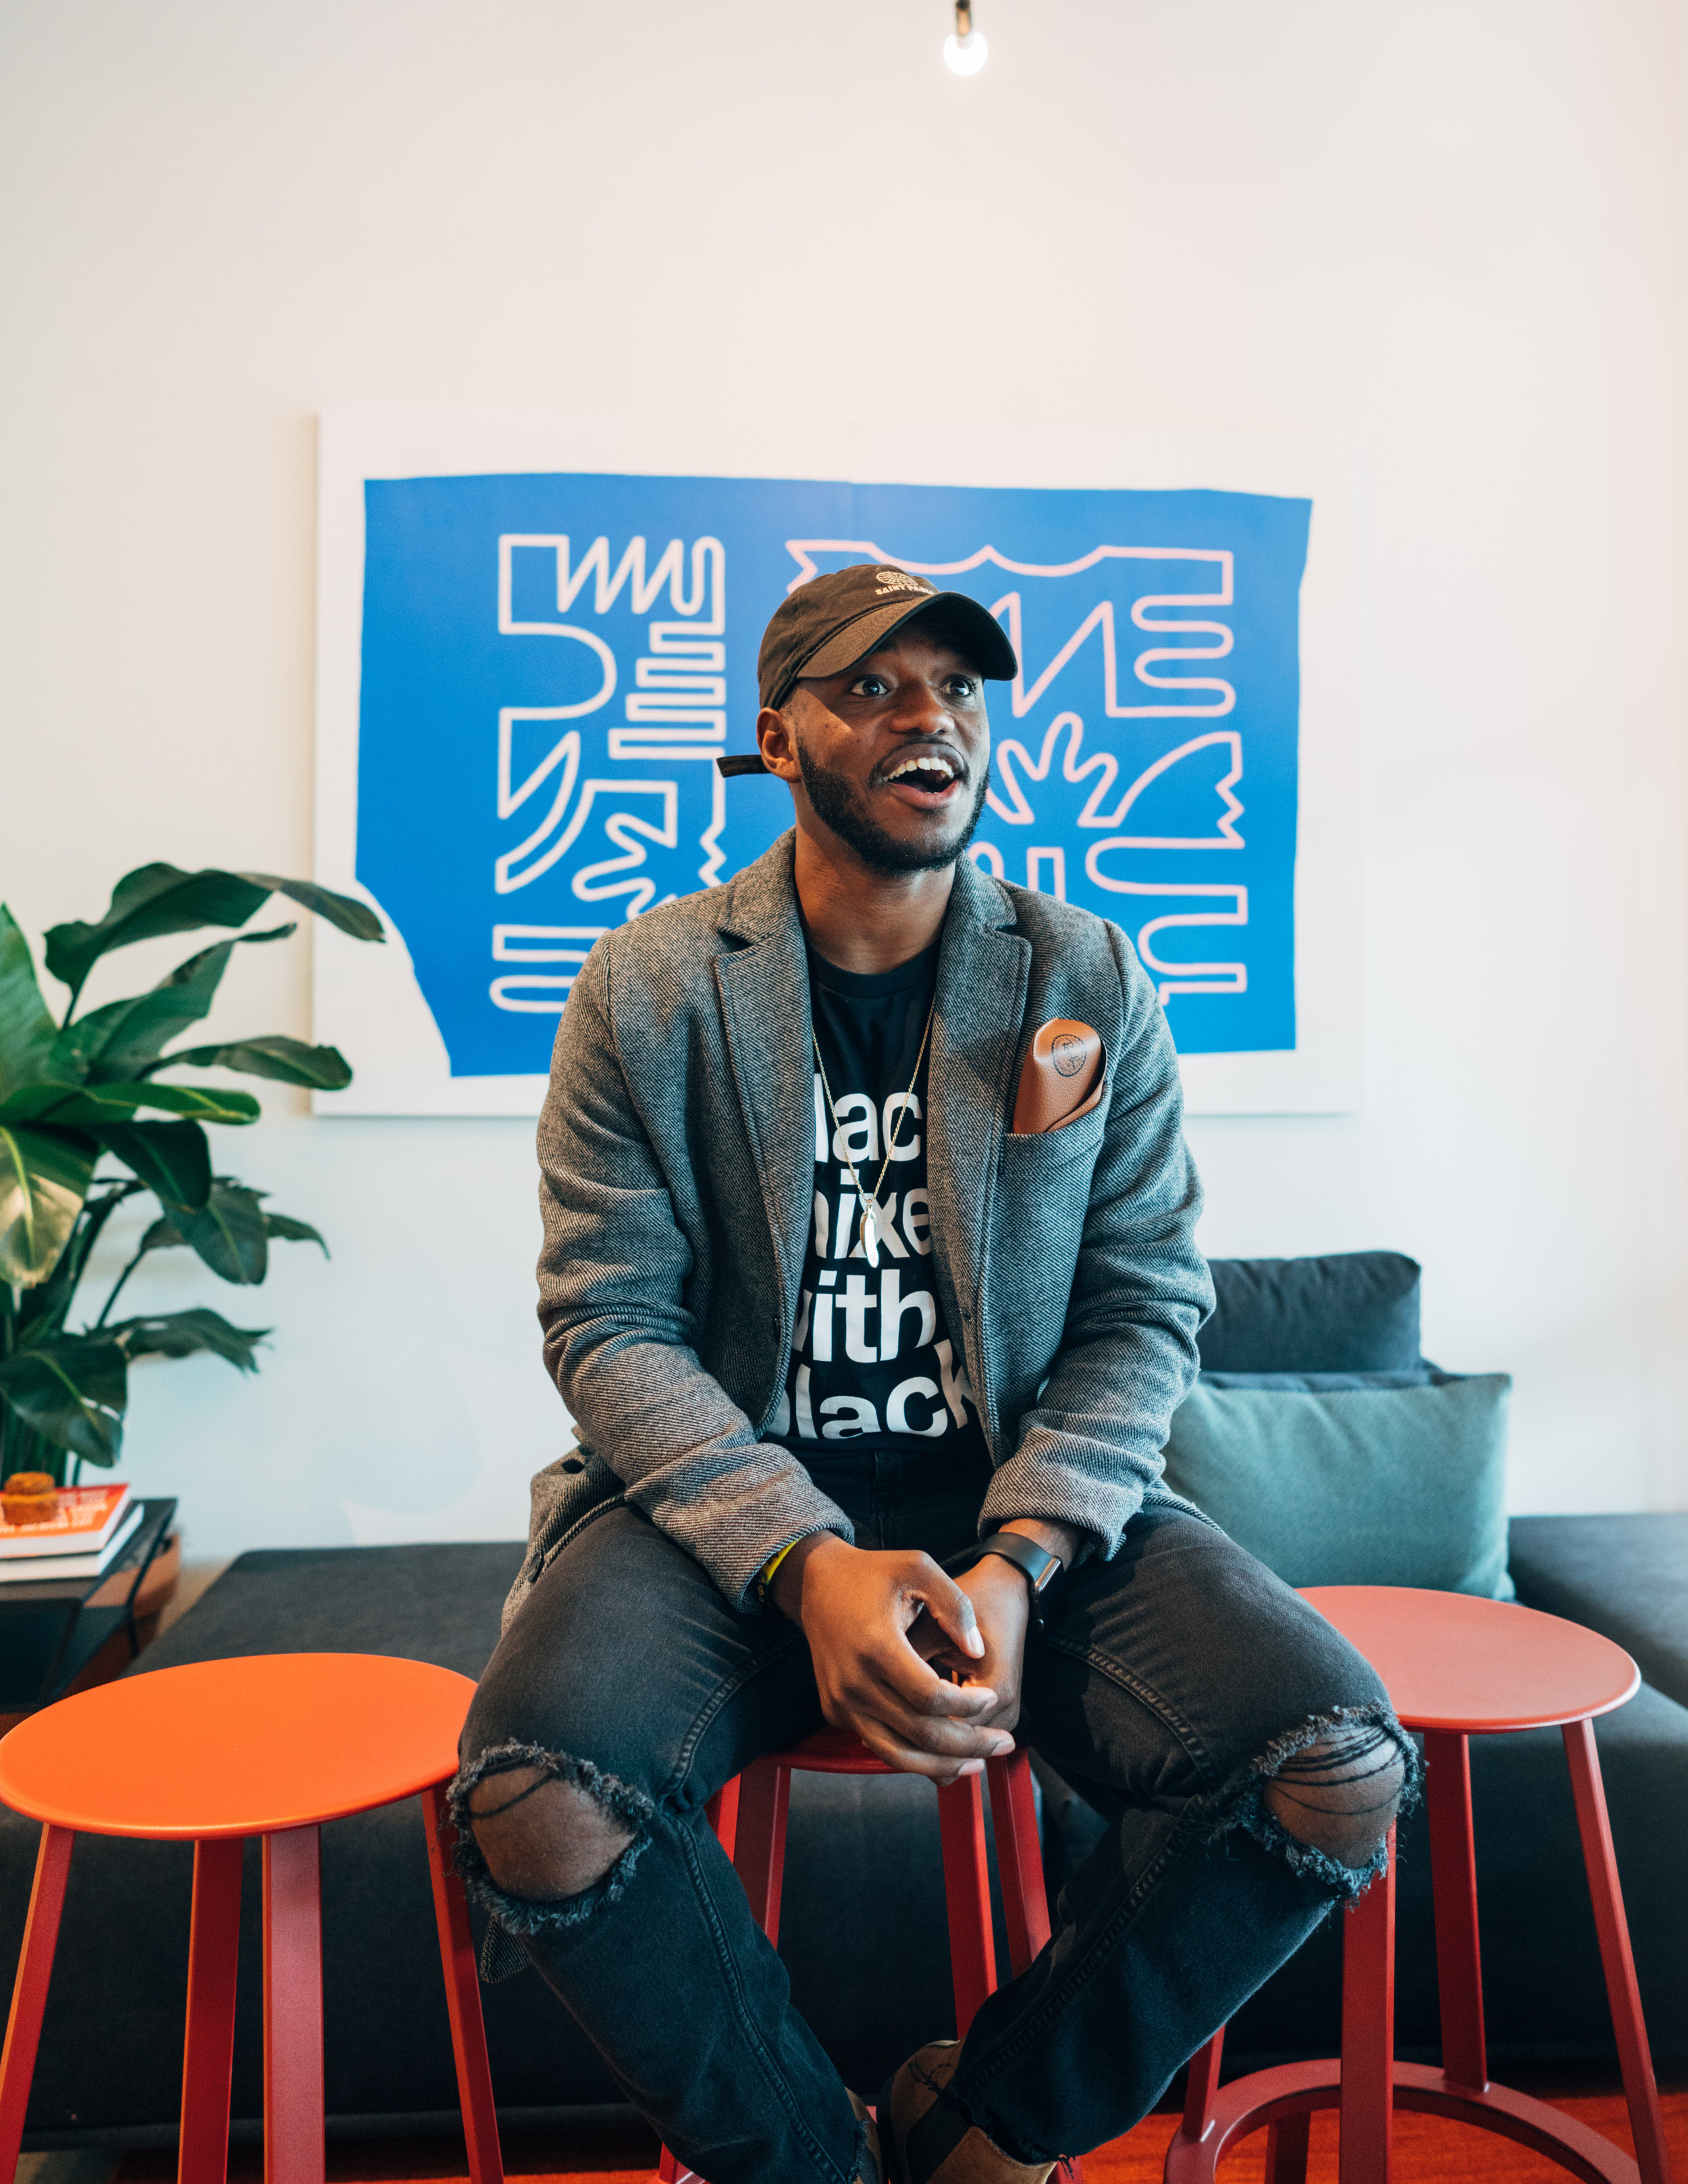 """WHY WE DO THIS - Black and Latino employees combined represent only 3-5% of all employees. In addition, the ongoing debates about whether the lack of diversity is due to a """"pipeline problem"""